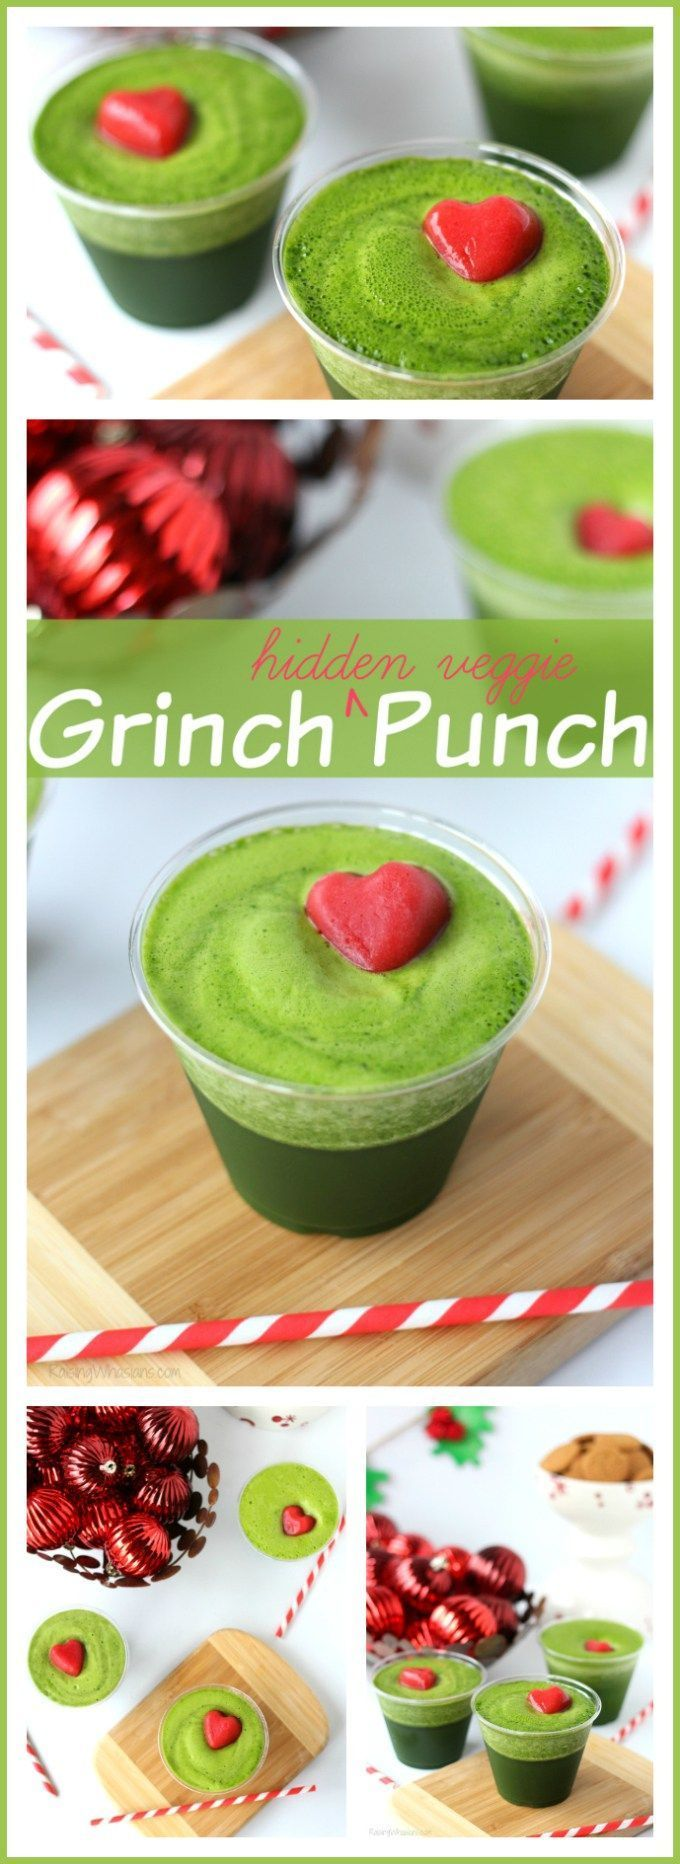 Kid-Approved Christmas Grinch Punch | 3-ingredient easy Christmas punch, made with hidden veggies! Inspired by The Grinch - Raising Whasians